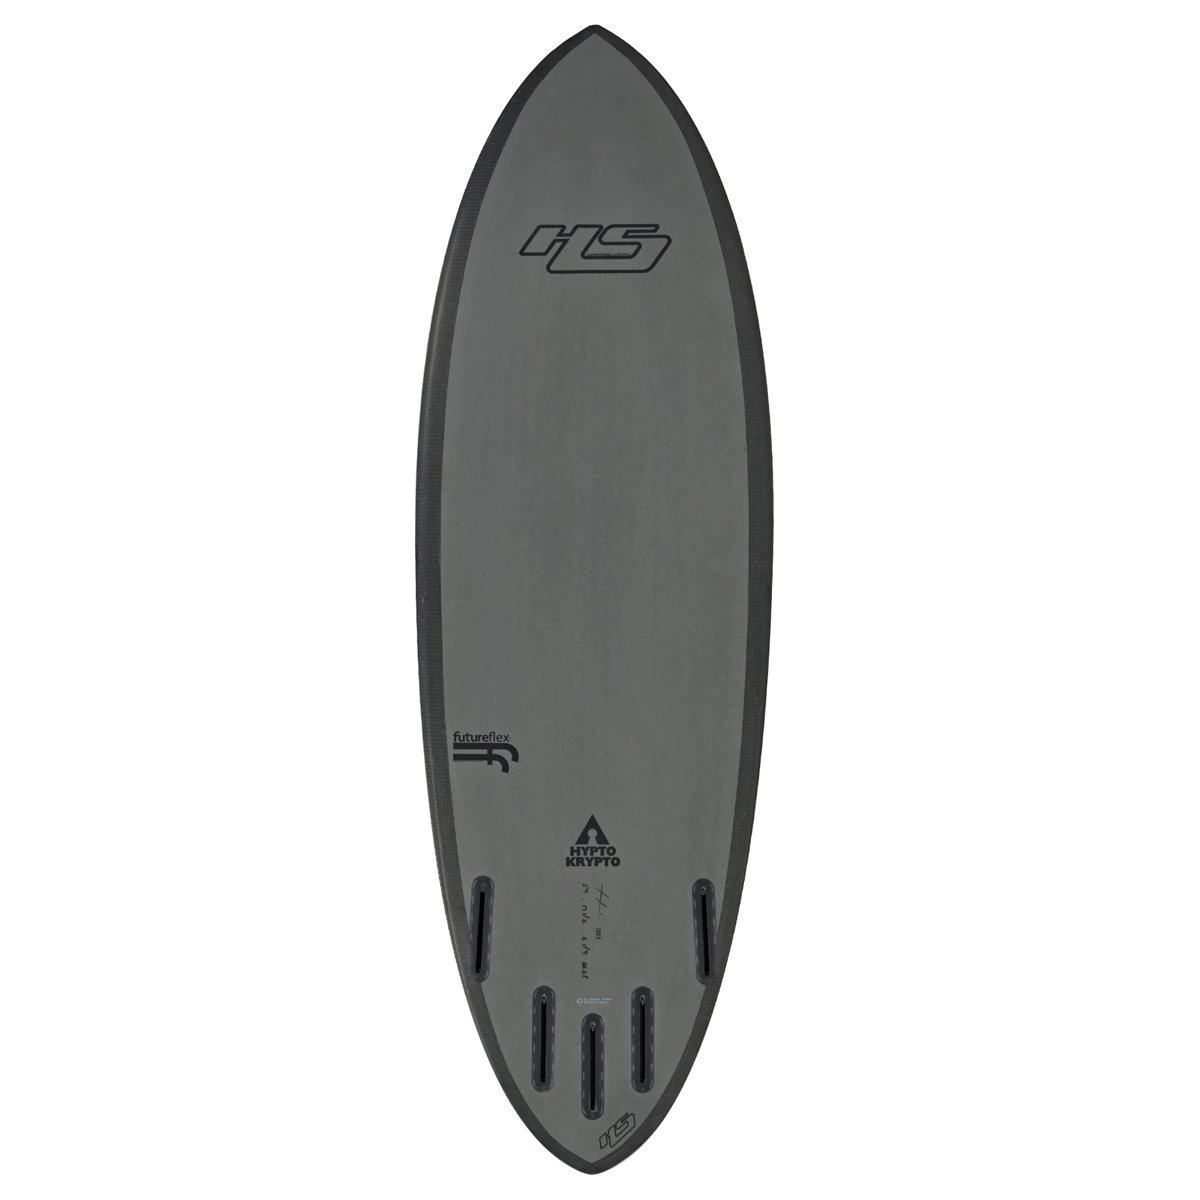 haydenshapes tablas de surf - haydenshapes Hypto Krypto futuro Flex 5 Fin Futures - gris, Unisex, gris, 5FT 8: Amazon.es: Deportes y aire libre